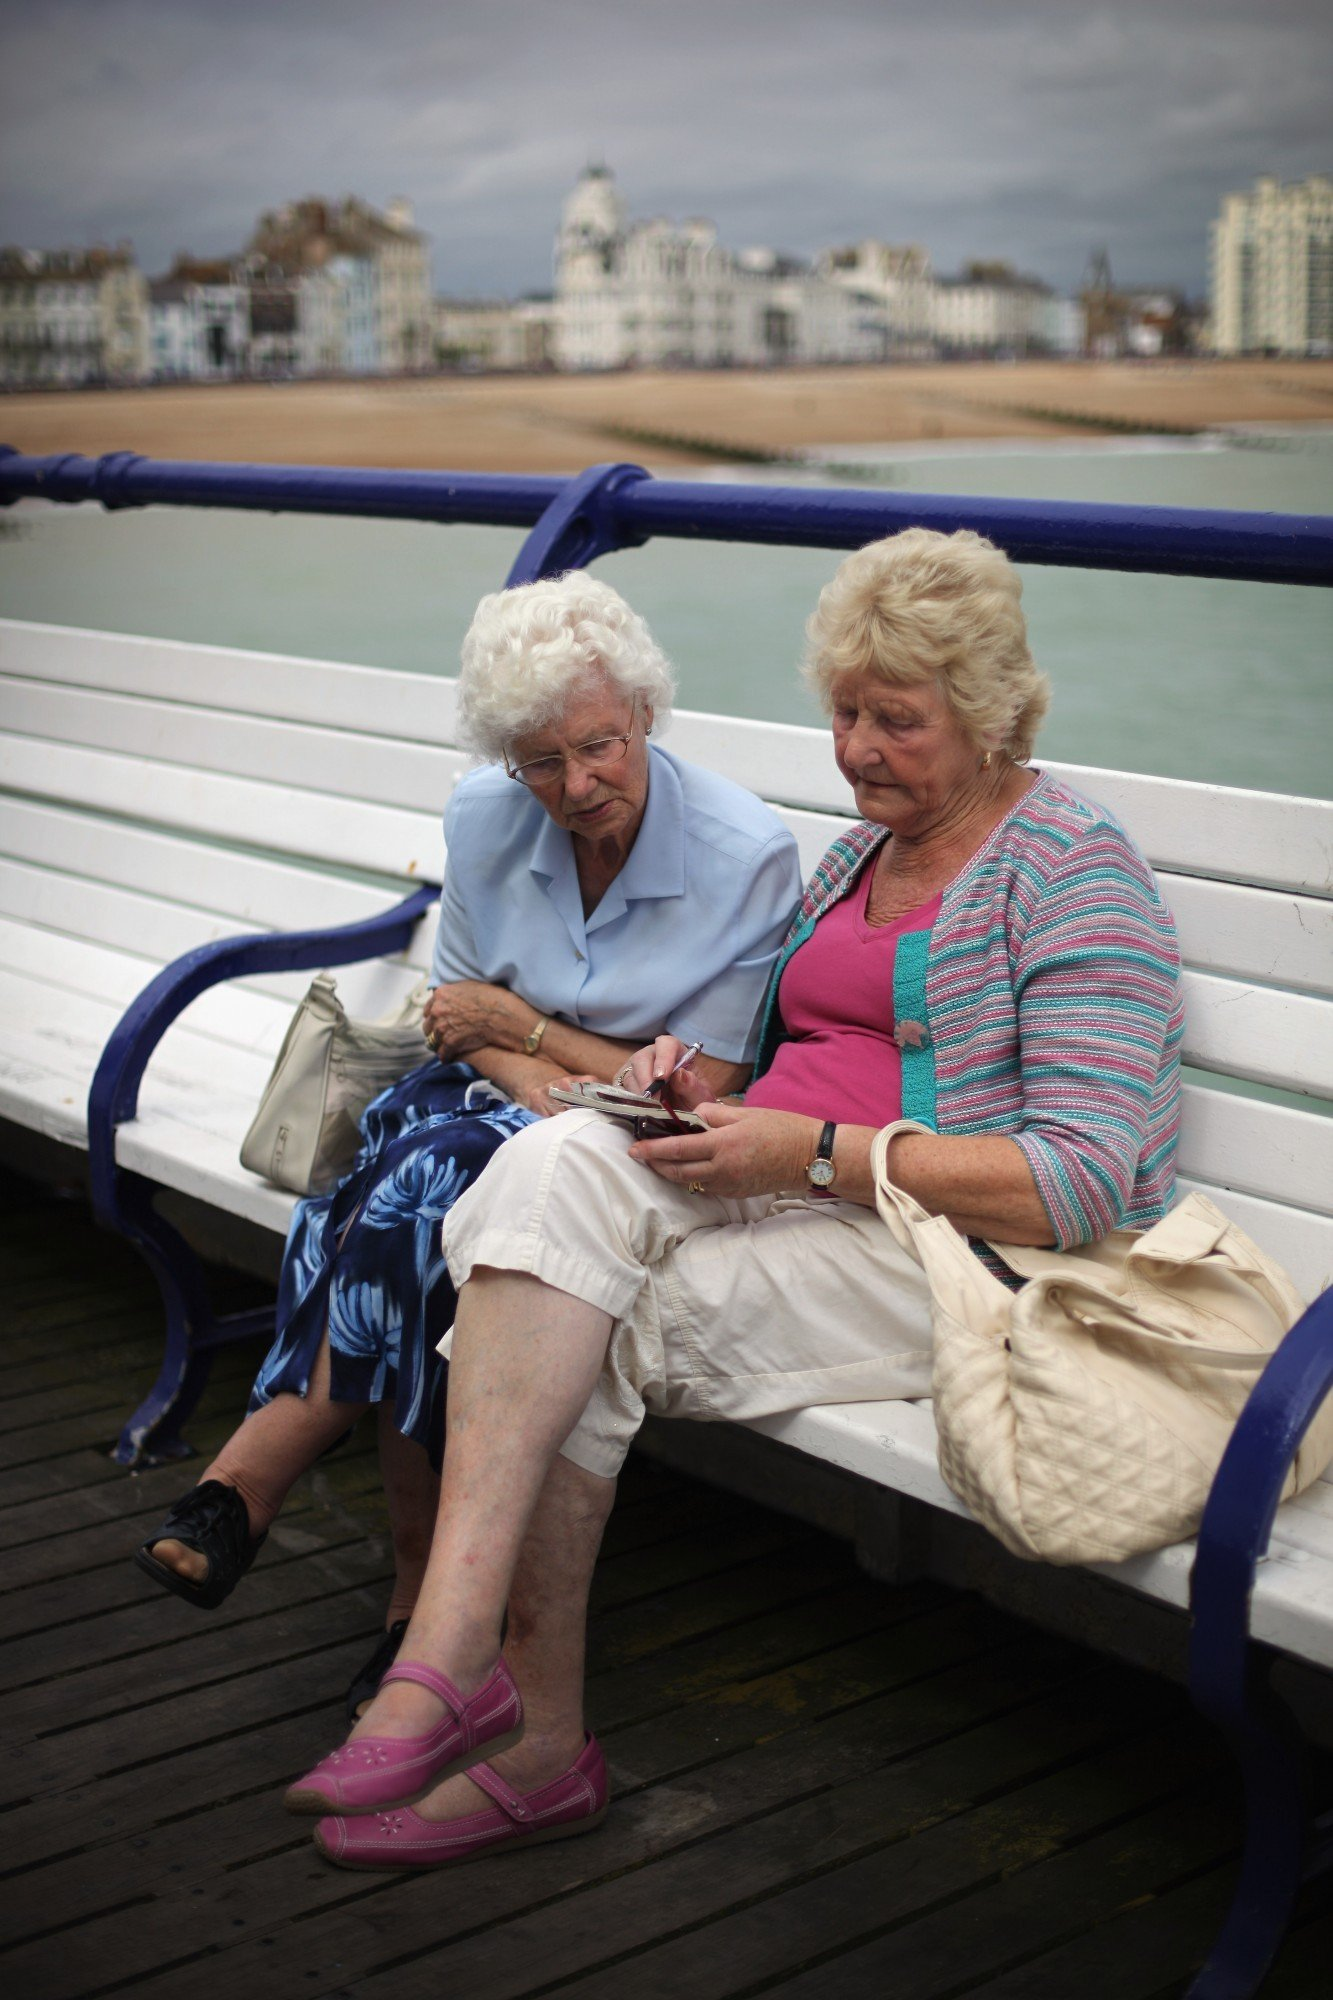 EASTBOURNE, ENGLAND - AUGUST 21: Two women complete a crossword on the pier at Eastbourne on August 21, 2010 in Eastbourne, England. Beach and seaside breaks in the UK have become increasingly popular due to people's nostalgic memories of growing up, according to the British tourist authority, VisitBritain. (Photo by Dan Kitwood/Getty Images)